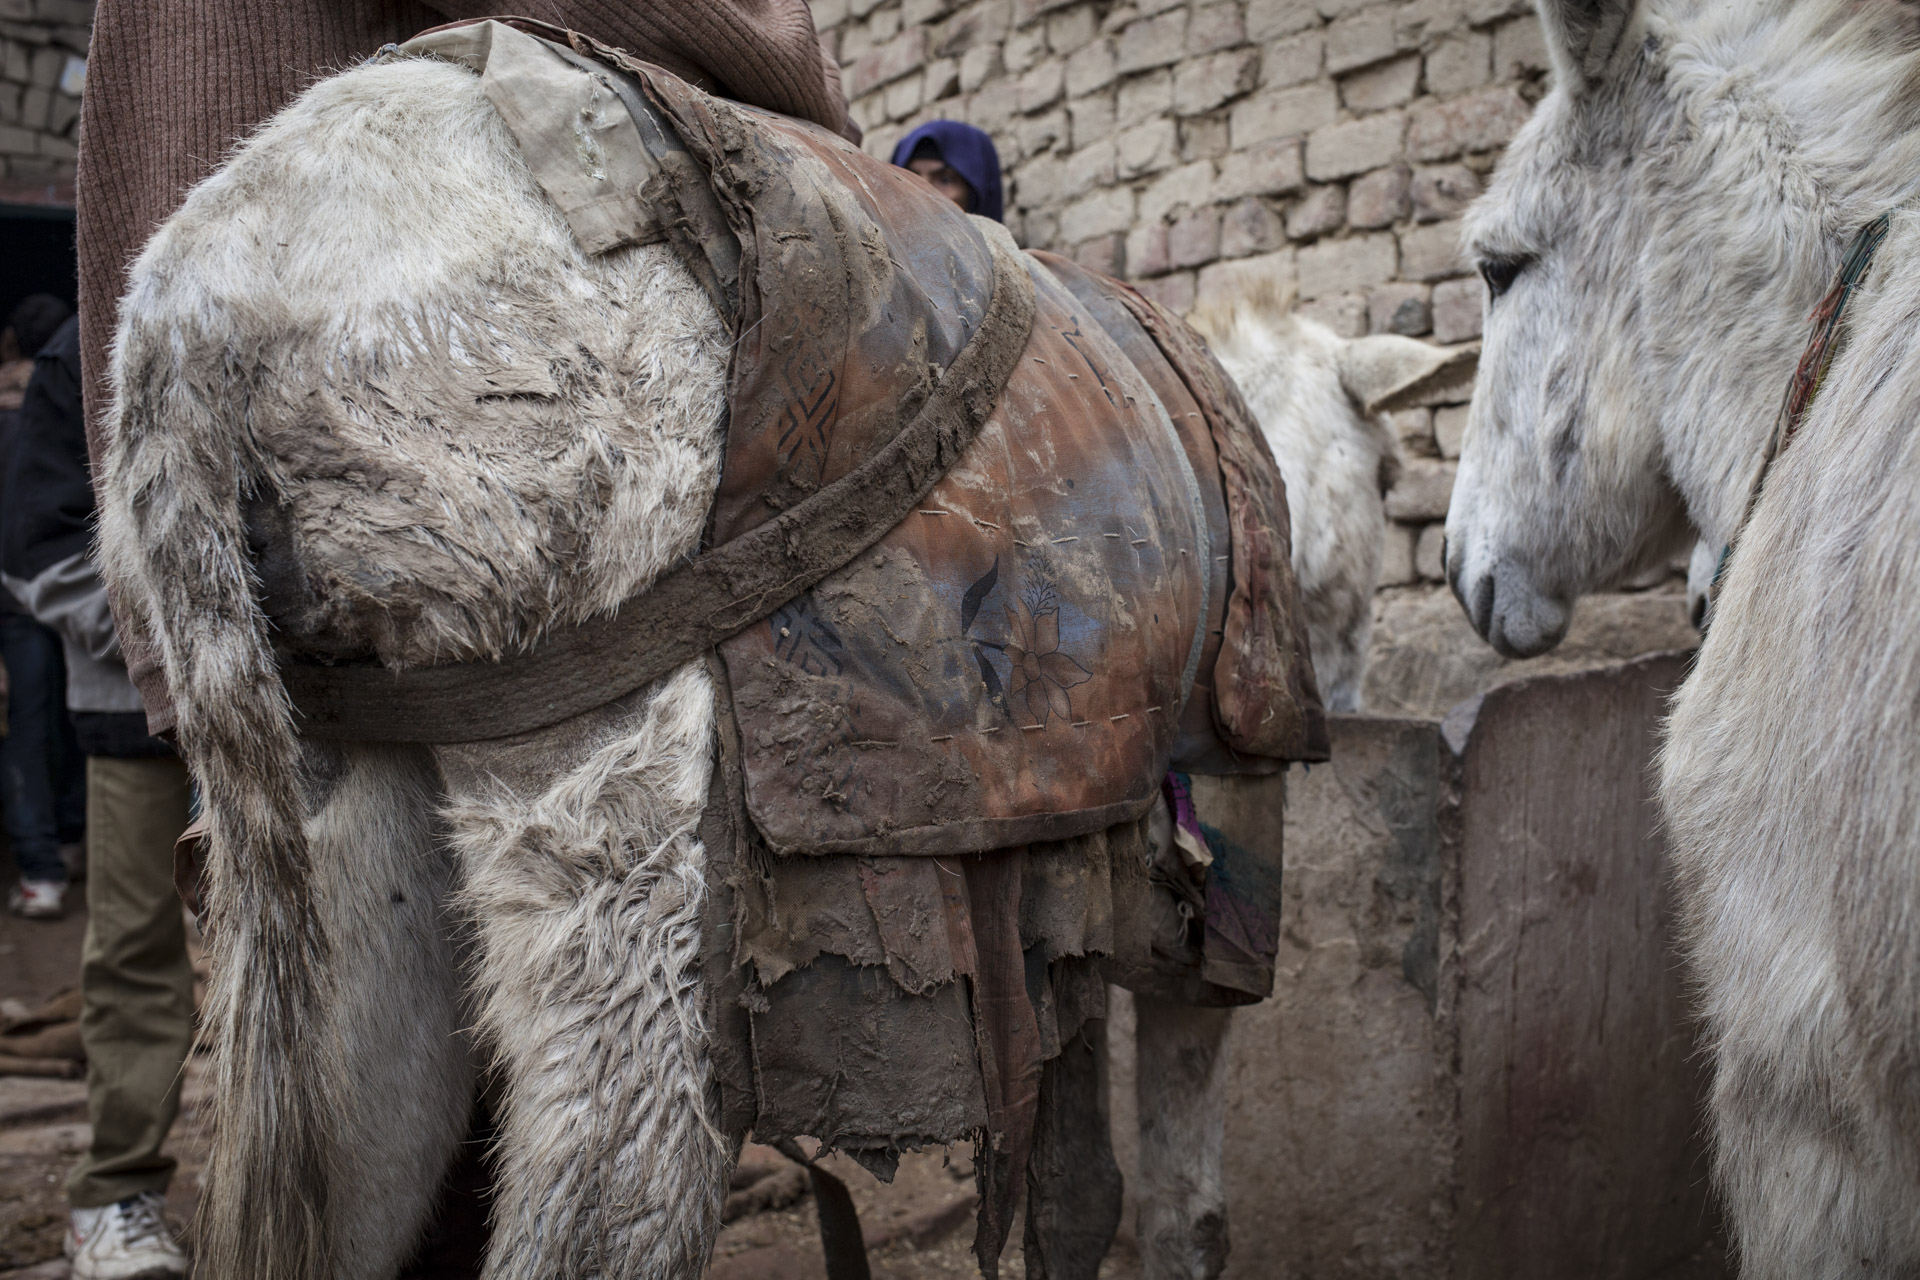 Madhupur Village near Agra, Uttar Pradesh, India. Harish (19) owns five donkeys and works at the VIP brick kiln about ten kilometres from Madhupur village.